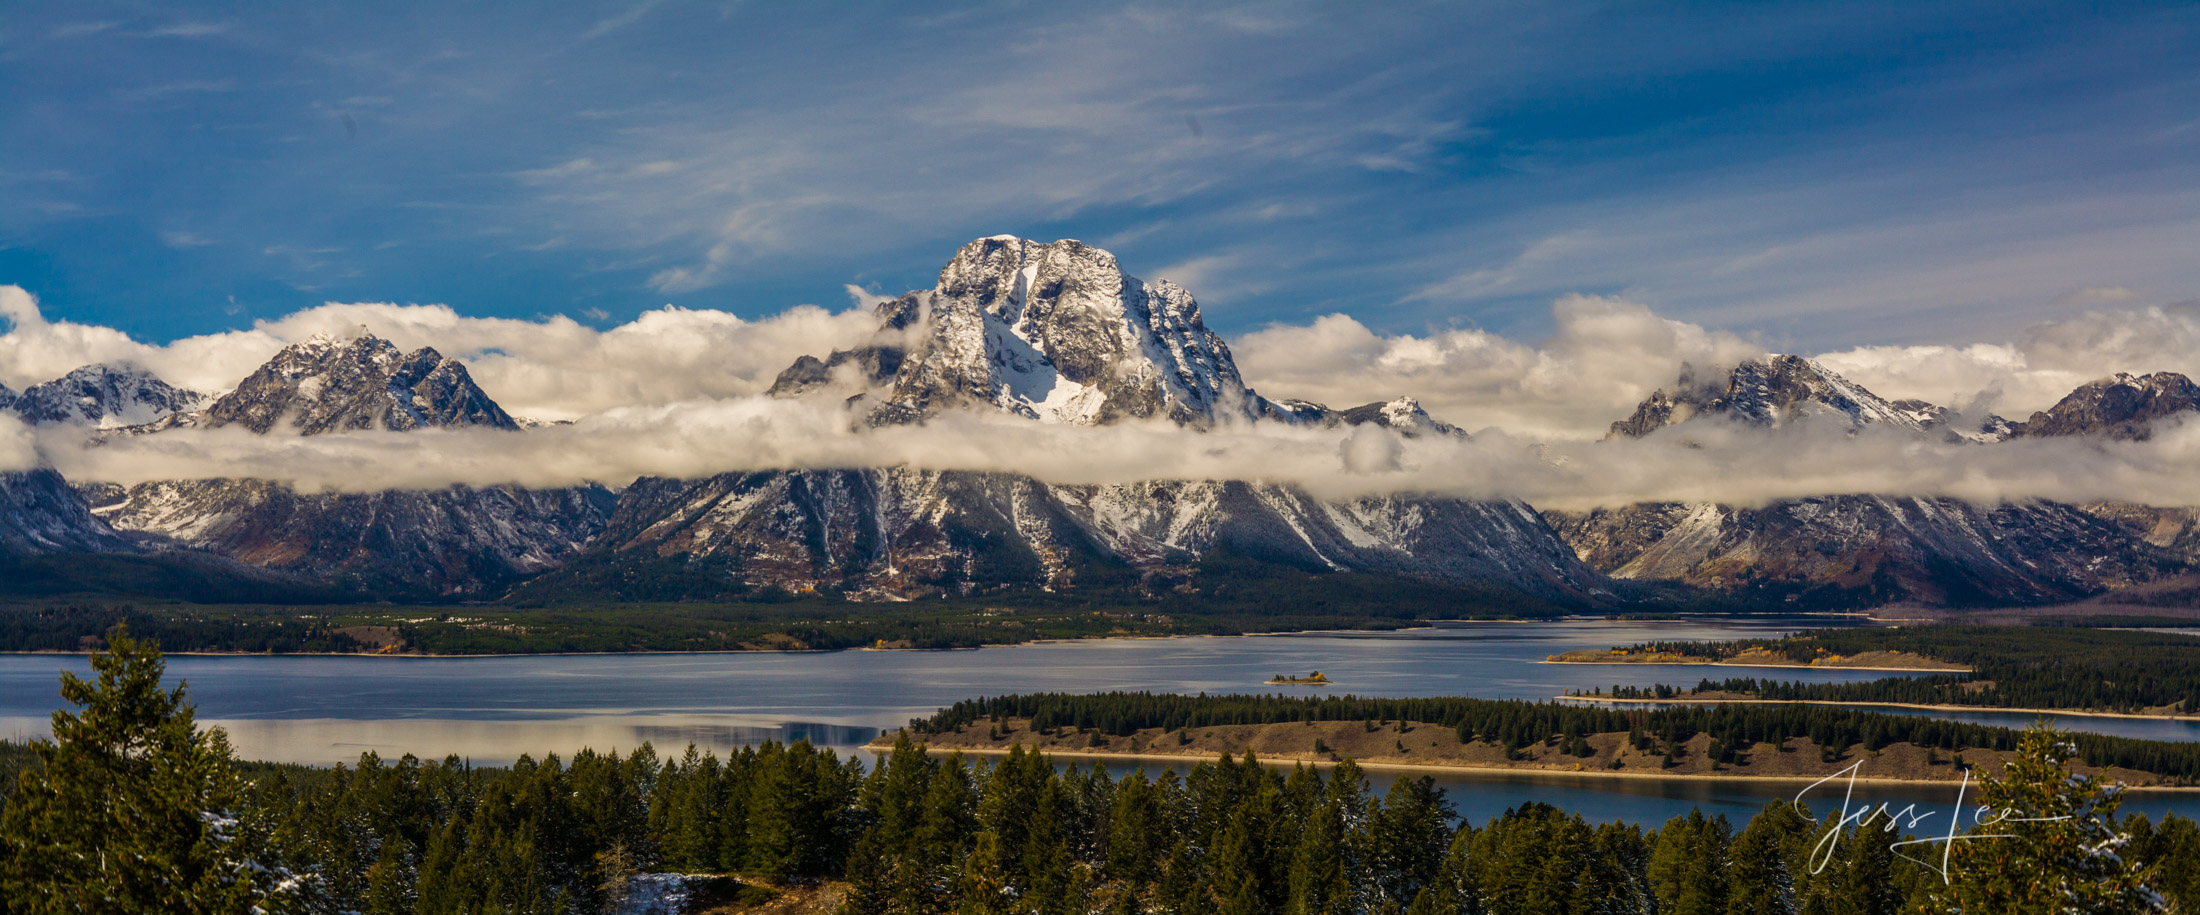 Limited Edition Fine Art photograph of Jackson Lake and Grand Teton mountain range.